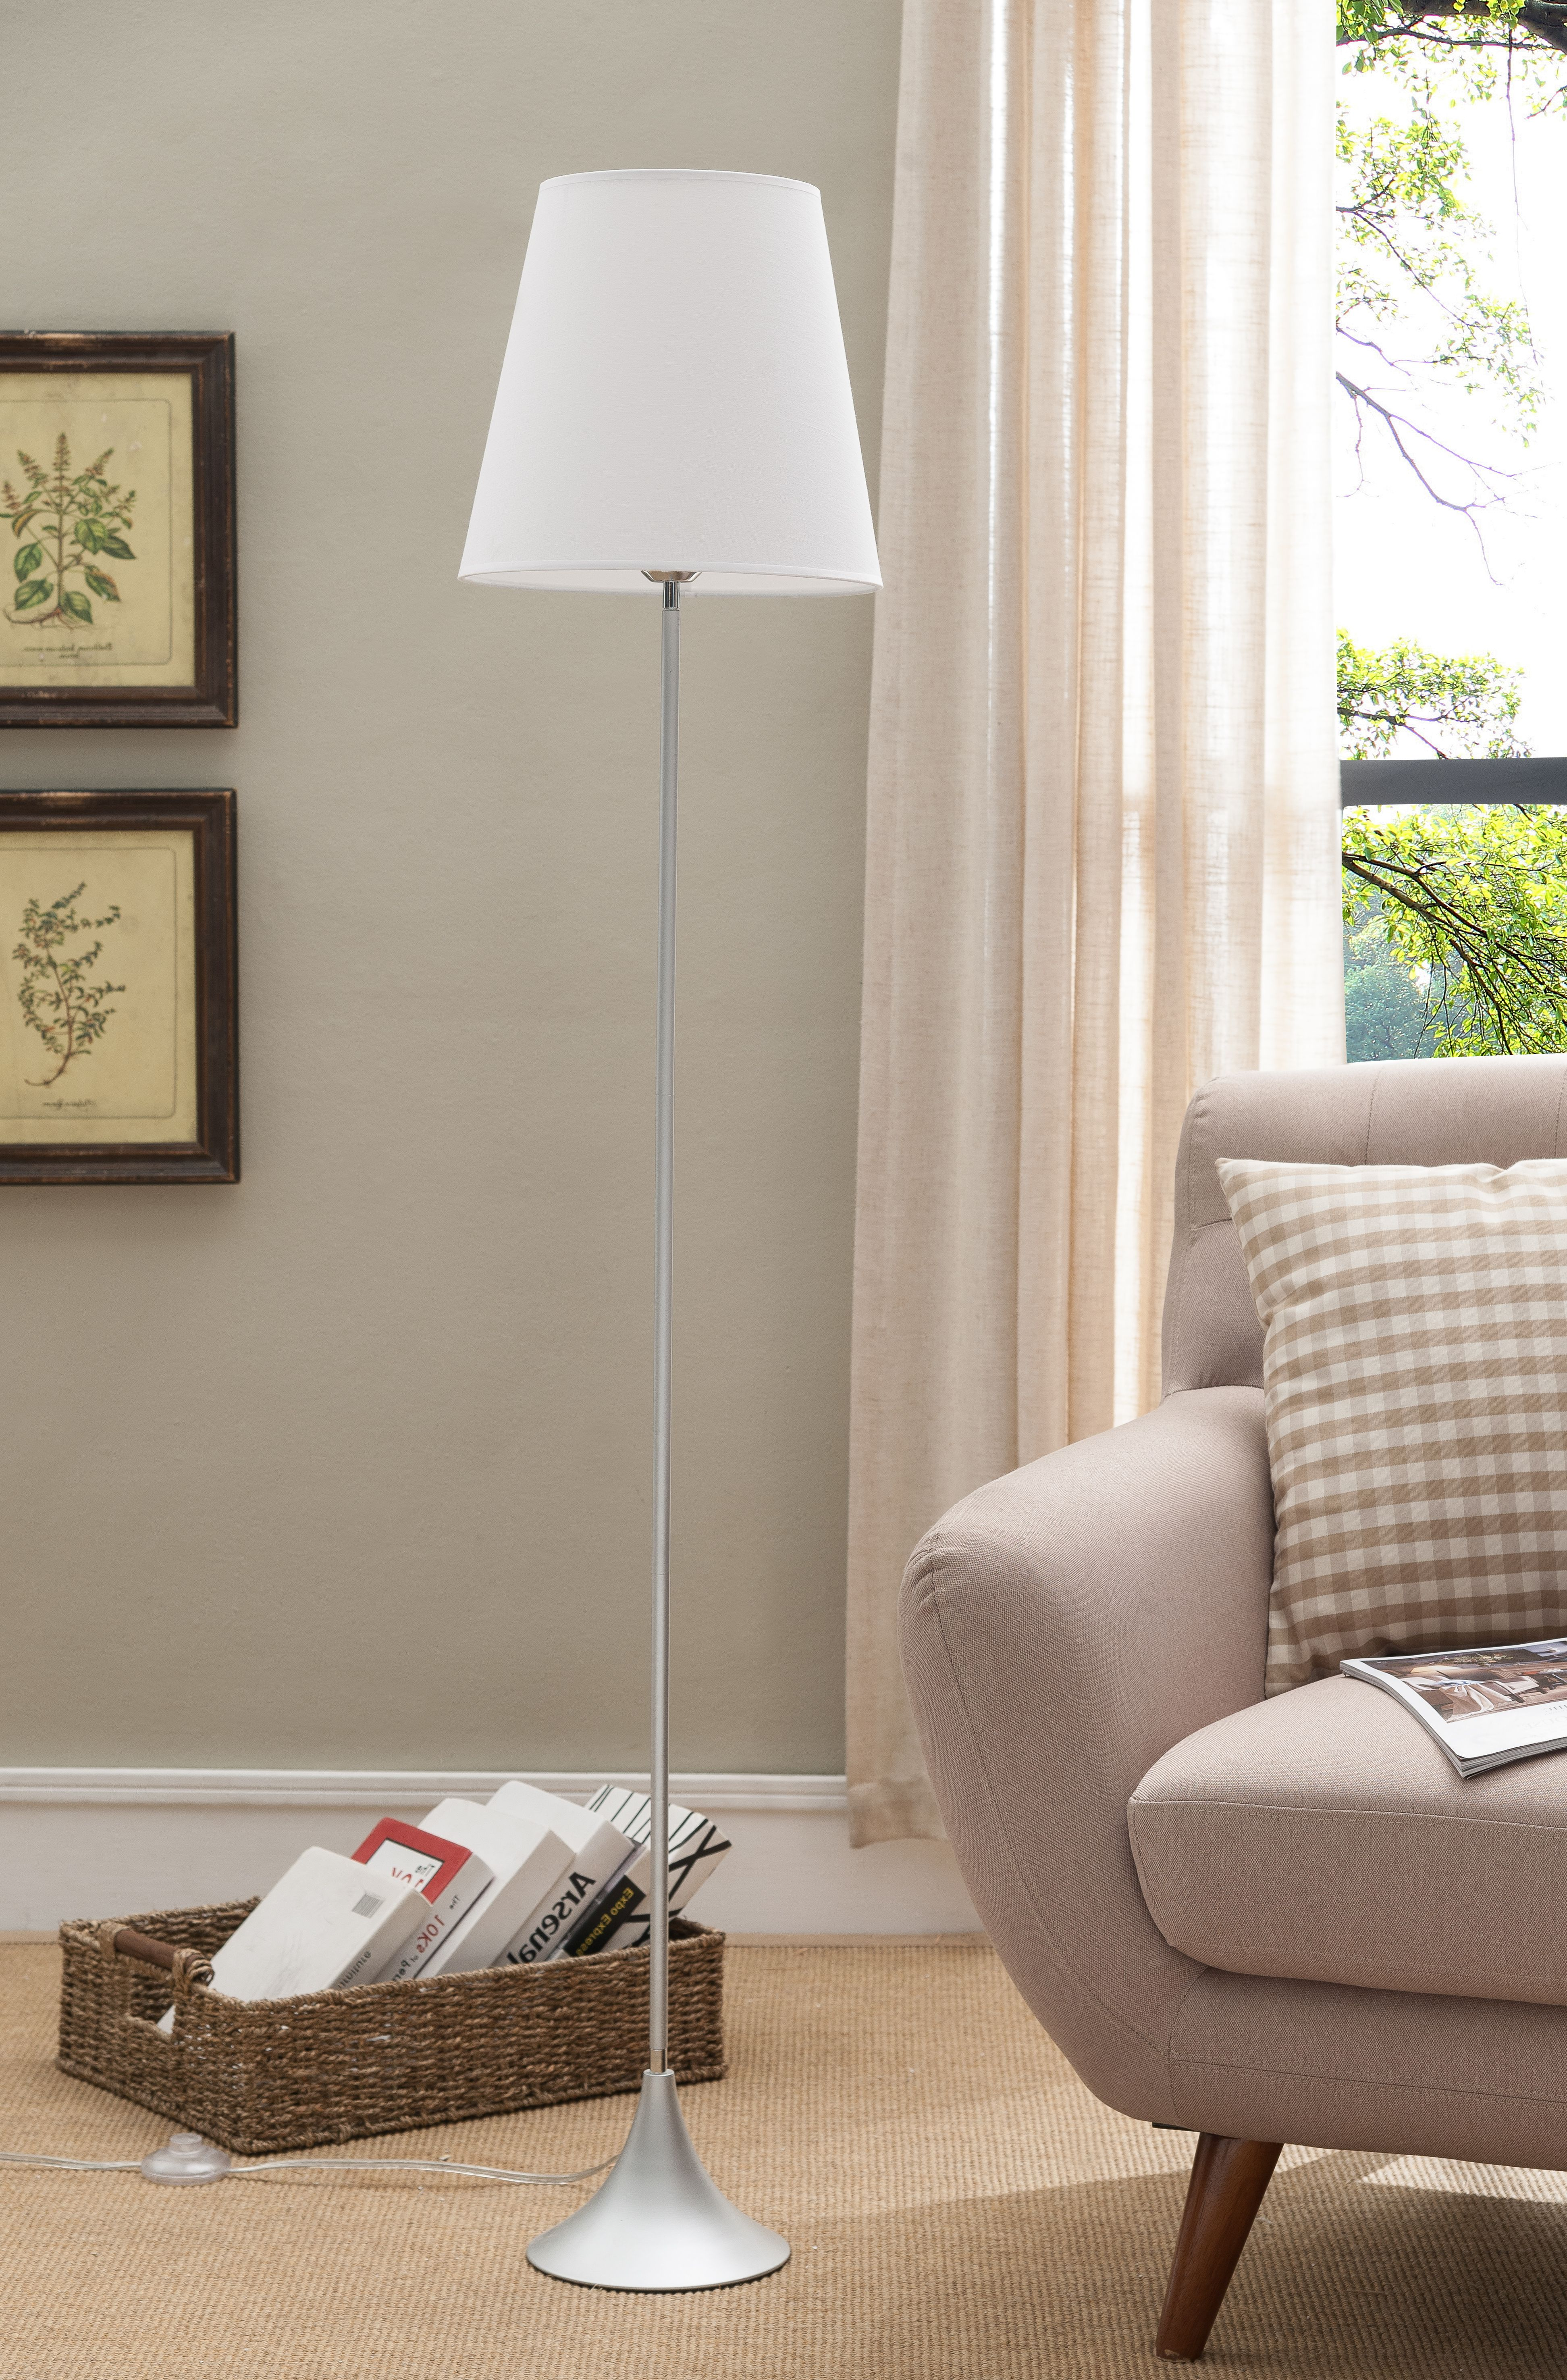 Image Is Loading Silver With White Fabric Shade Contemporary Floor Standing